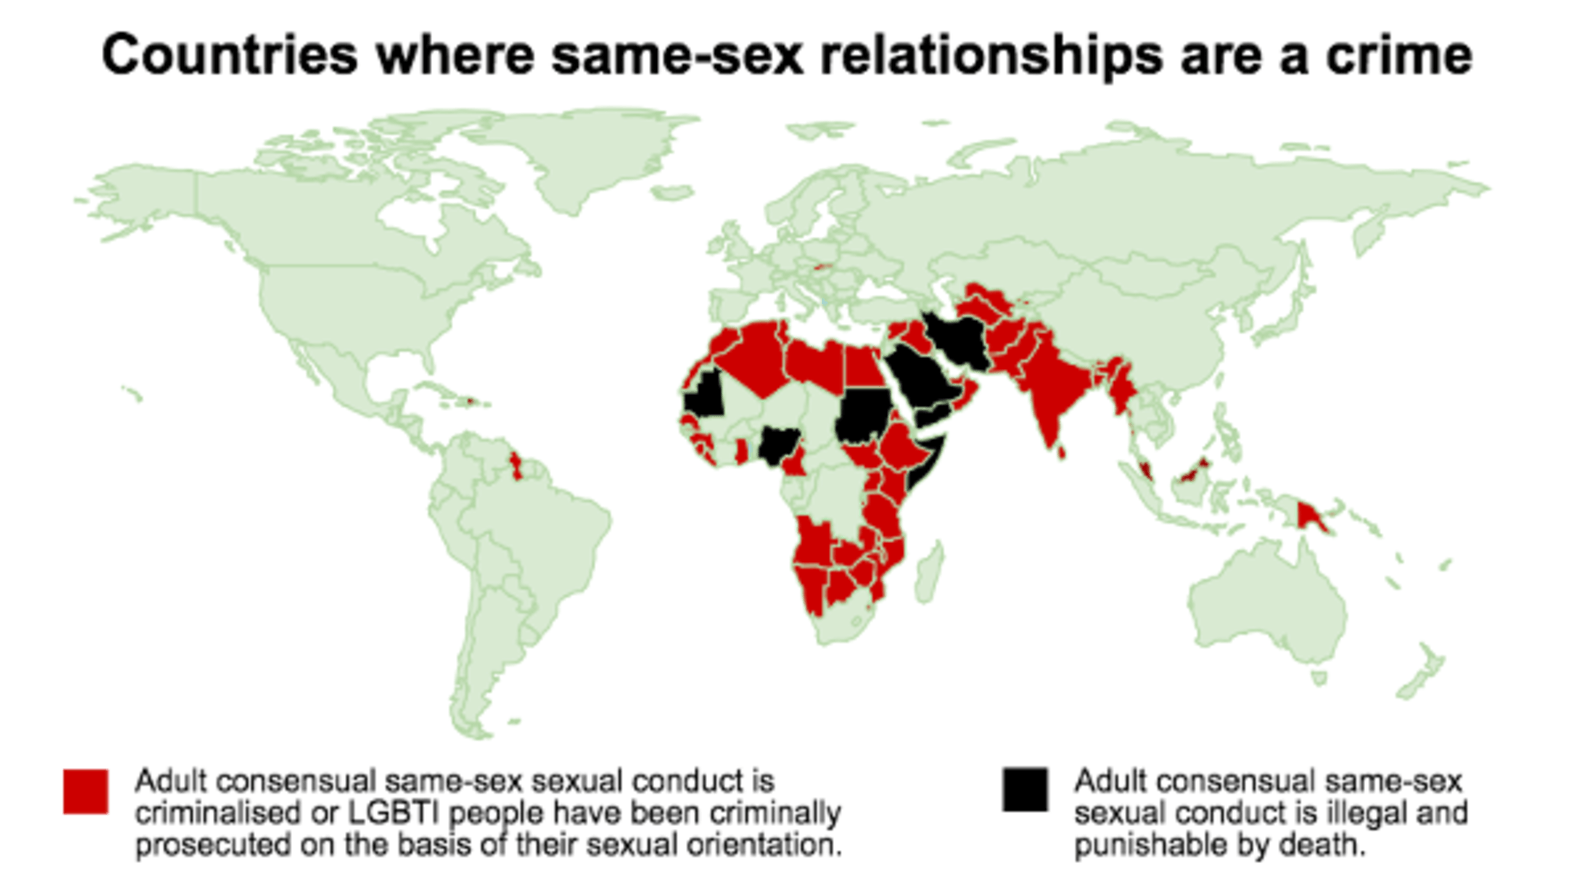 Countries whre same-sex relationships are a crime